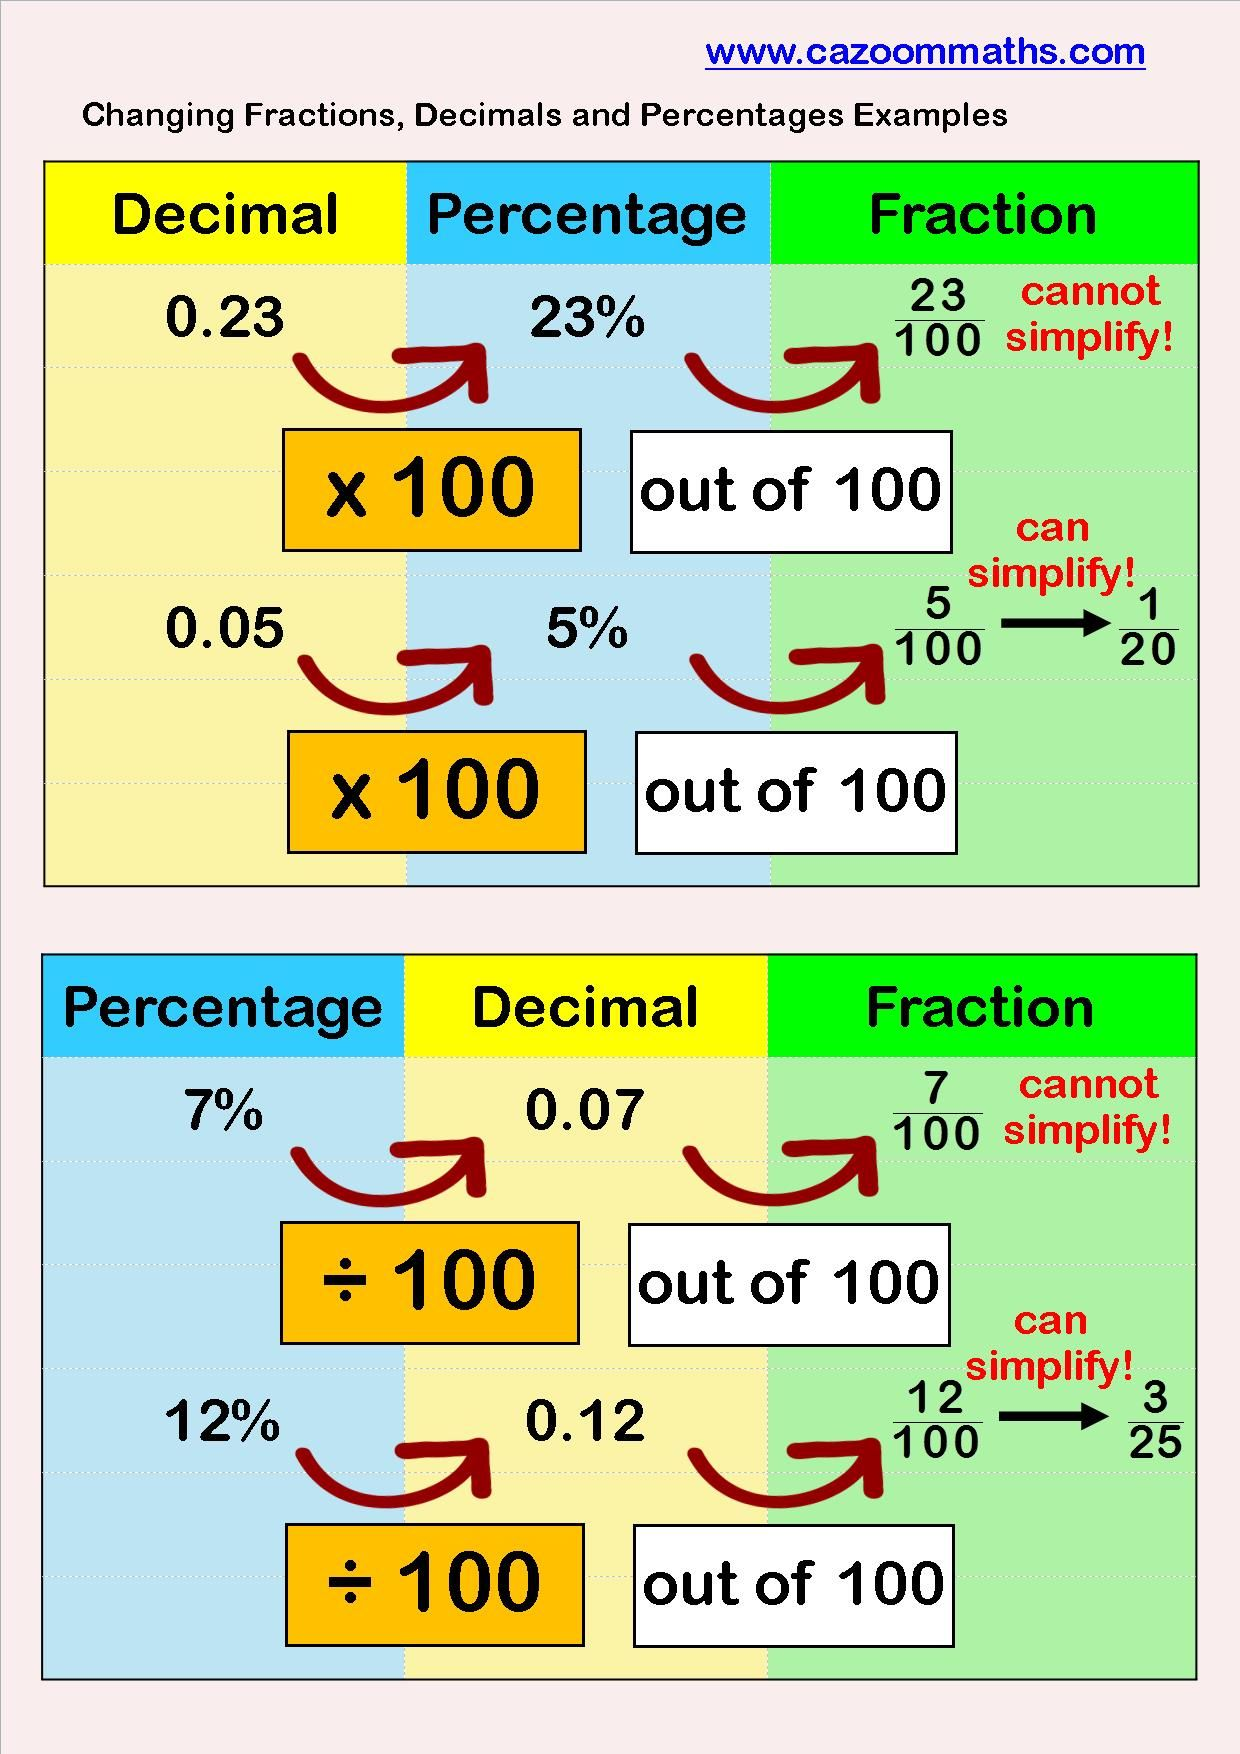 Fractions To Decimals To Percentages Example Sped Middle